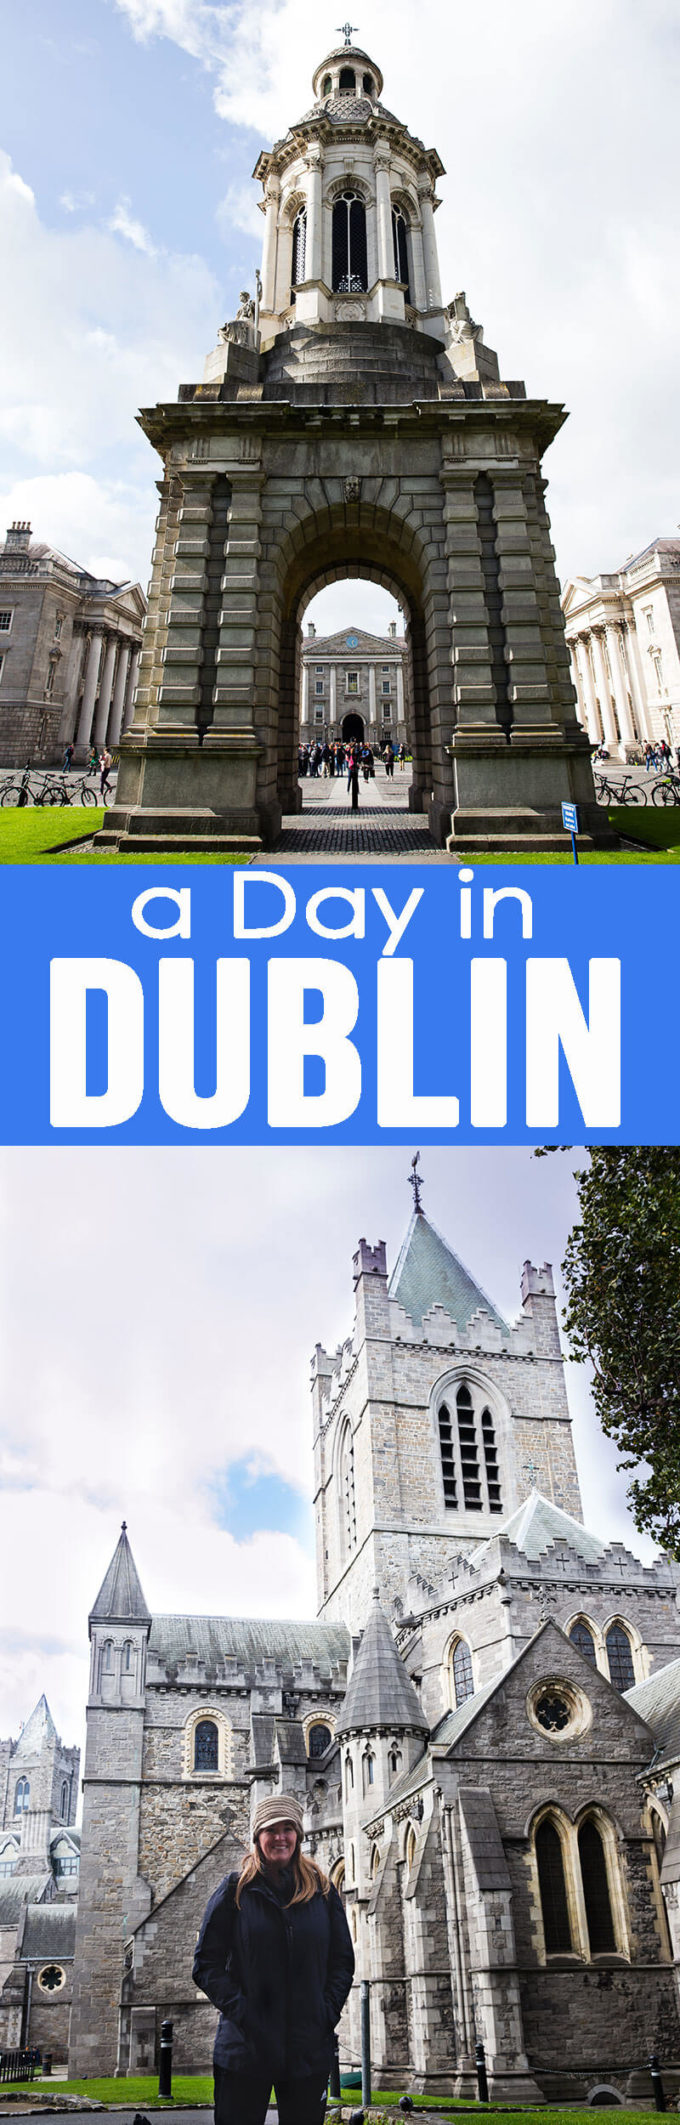 A day in Dublin, how to spend 24 hours enjoying this Irish city.